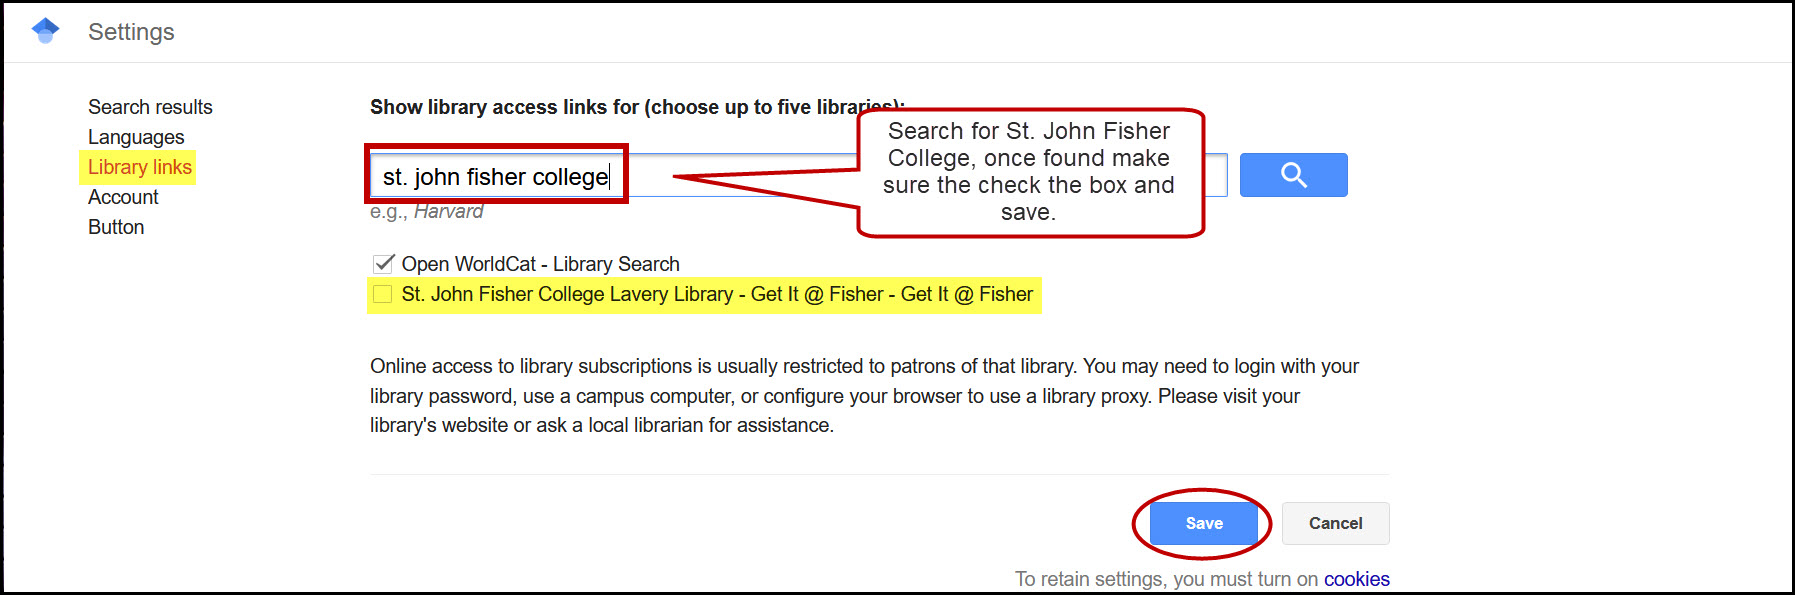 Settings menu page with Library Links menu highlighted. St. John Fisher College is typed into the search bar, and the St. John Fisher College Lavery Library - Get It @ Fisher - Get it @ Fisher option is highlighted.